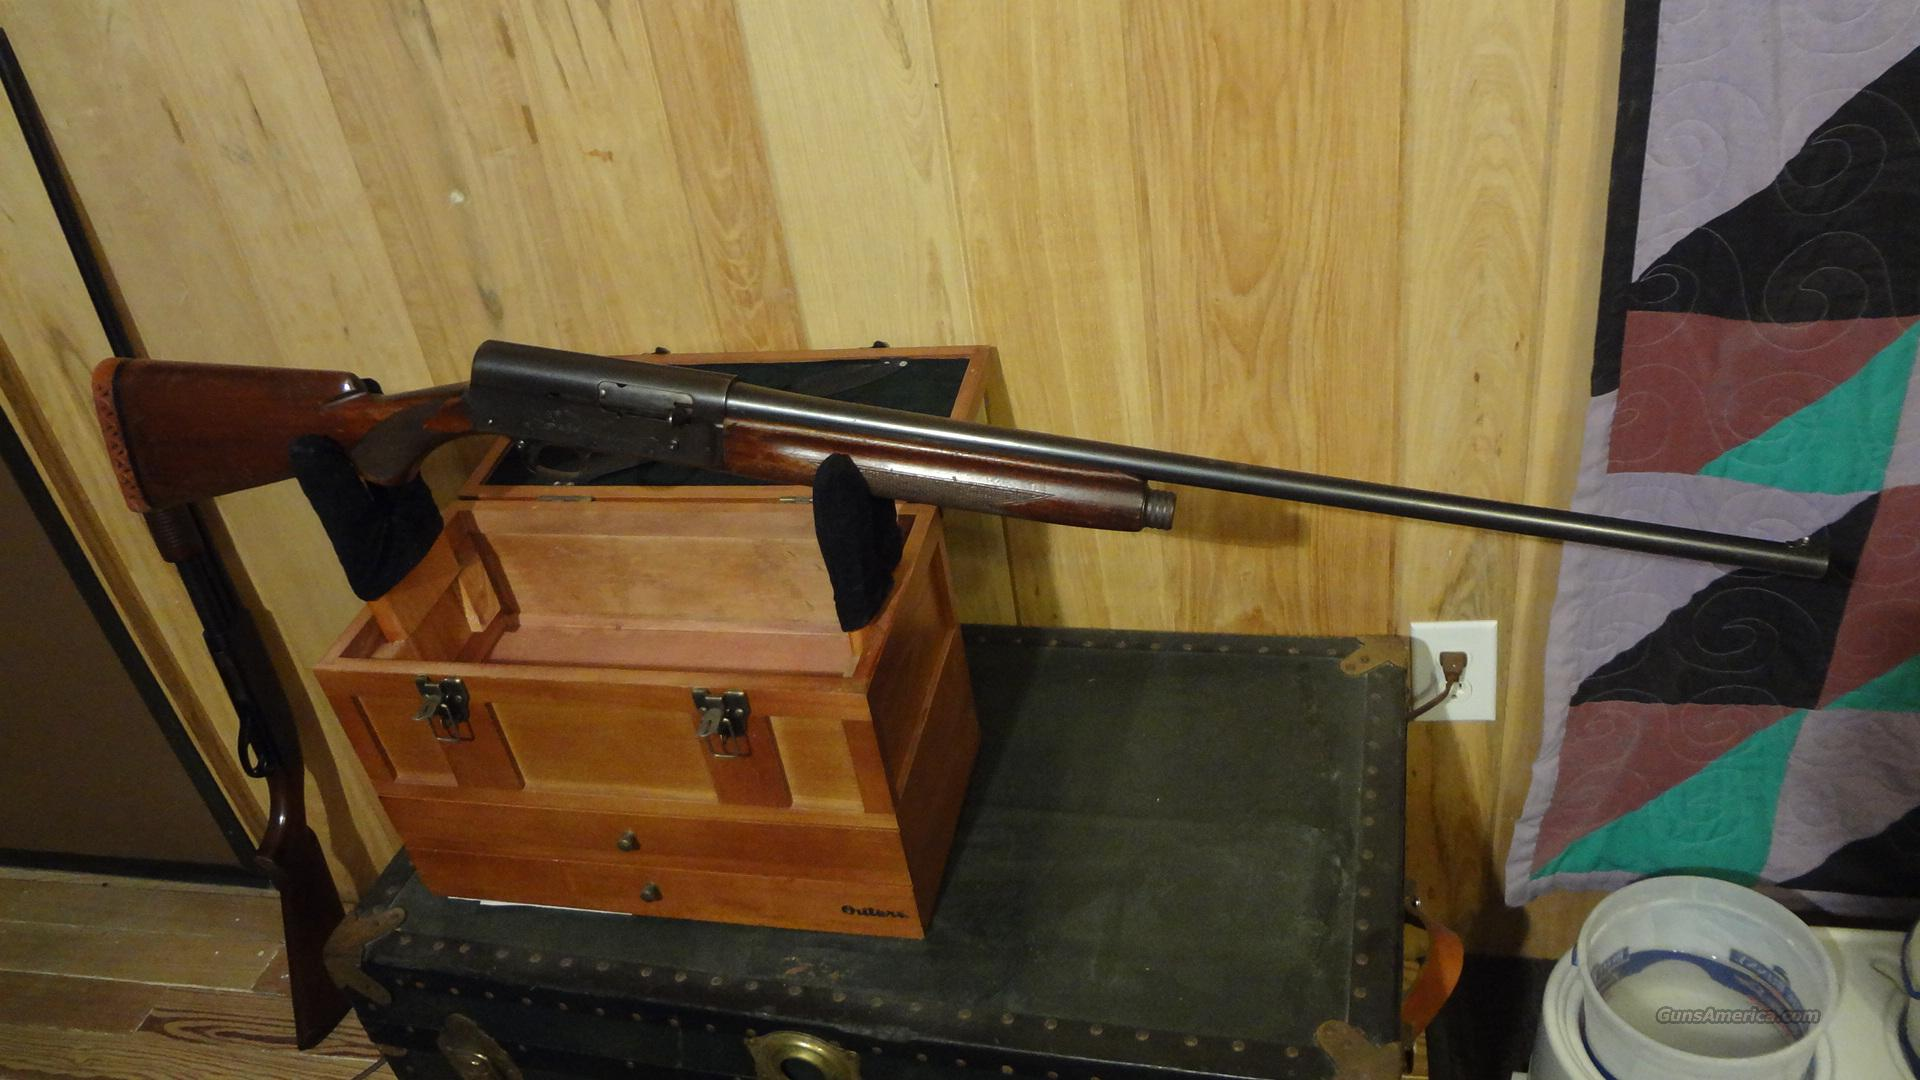 Remington model 11 20 gauge shotgun  Guns > Shotguns > Remington Shotguns  > Autoloaders > Hunting